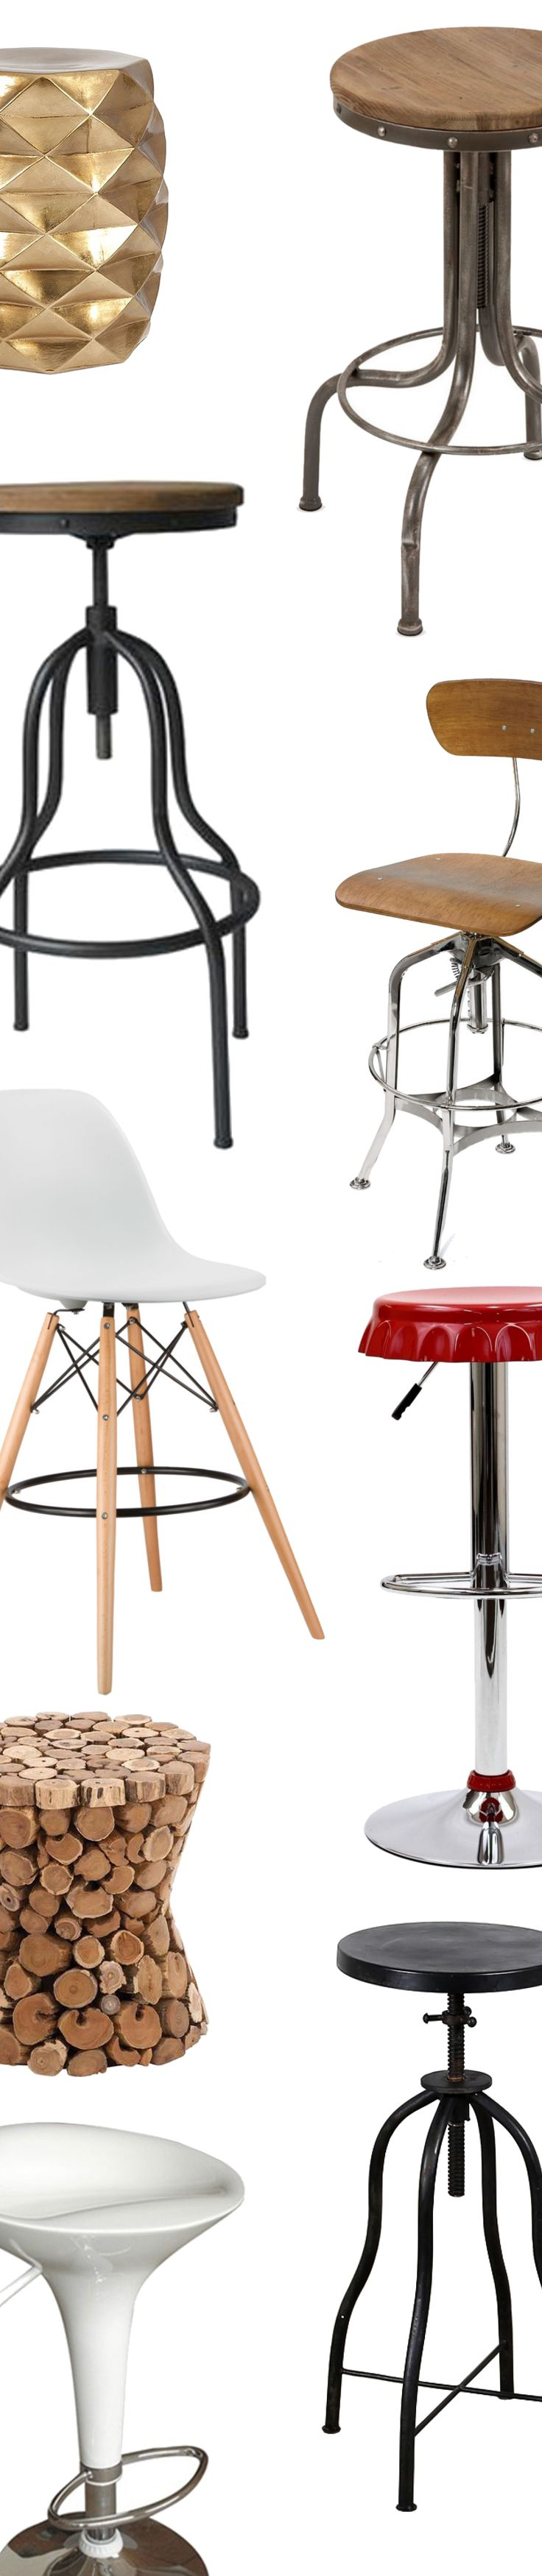 Bar Stools, Counter Stools & Garden Stools | Up to 70% Off at dotandbo.com